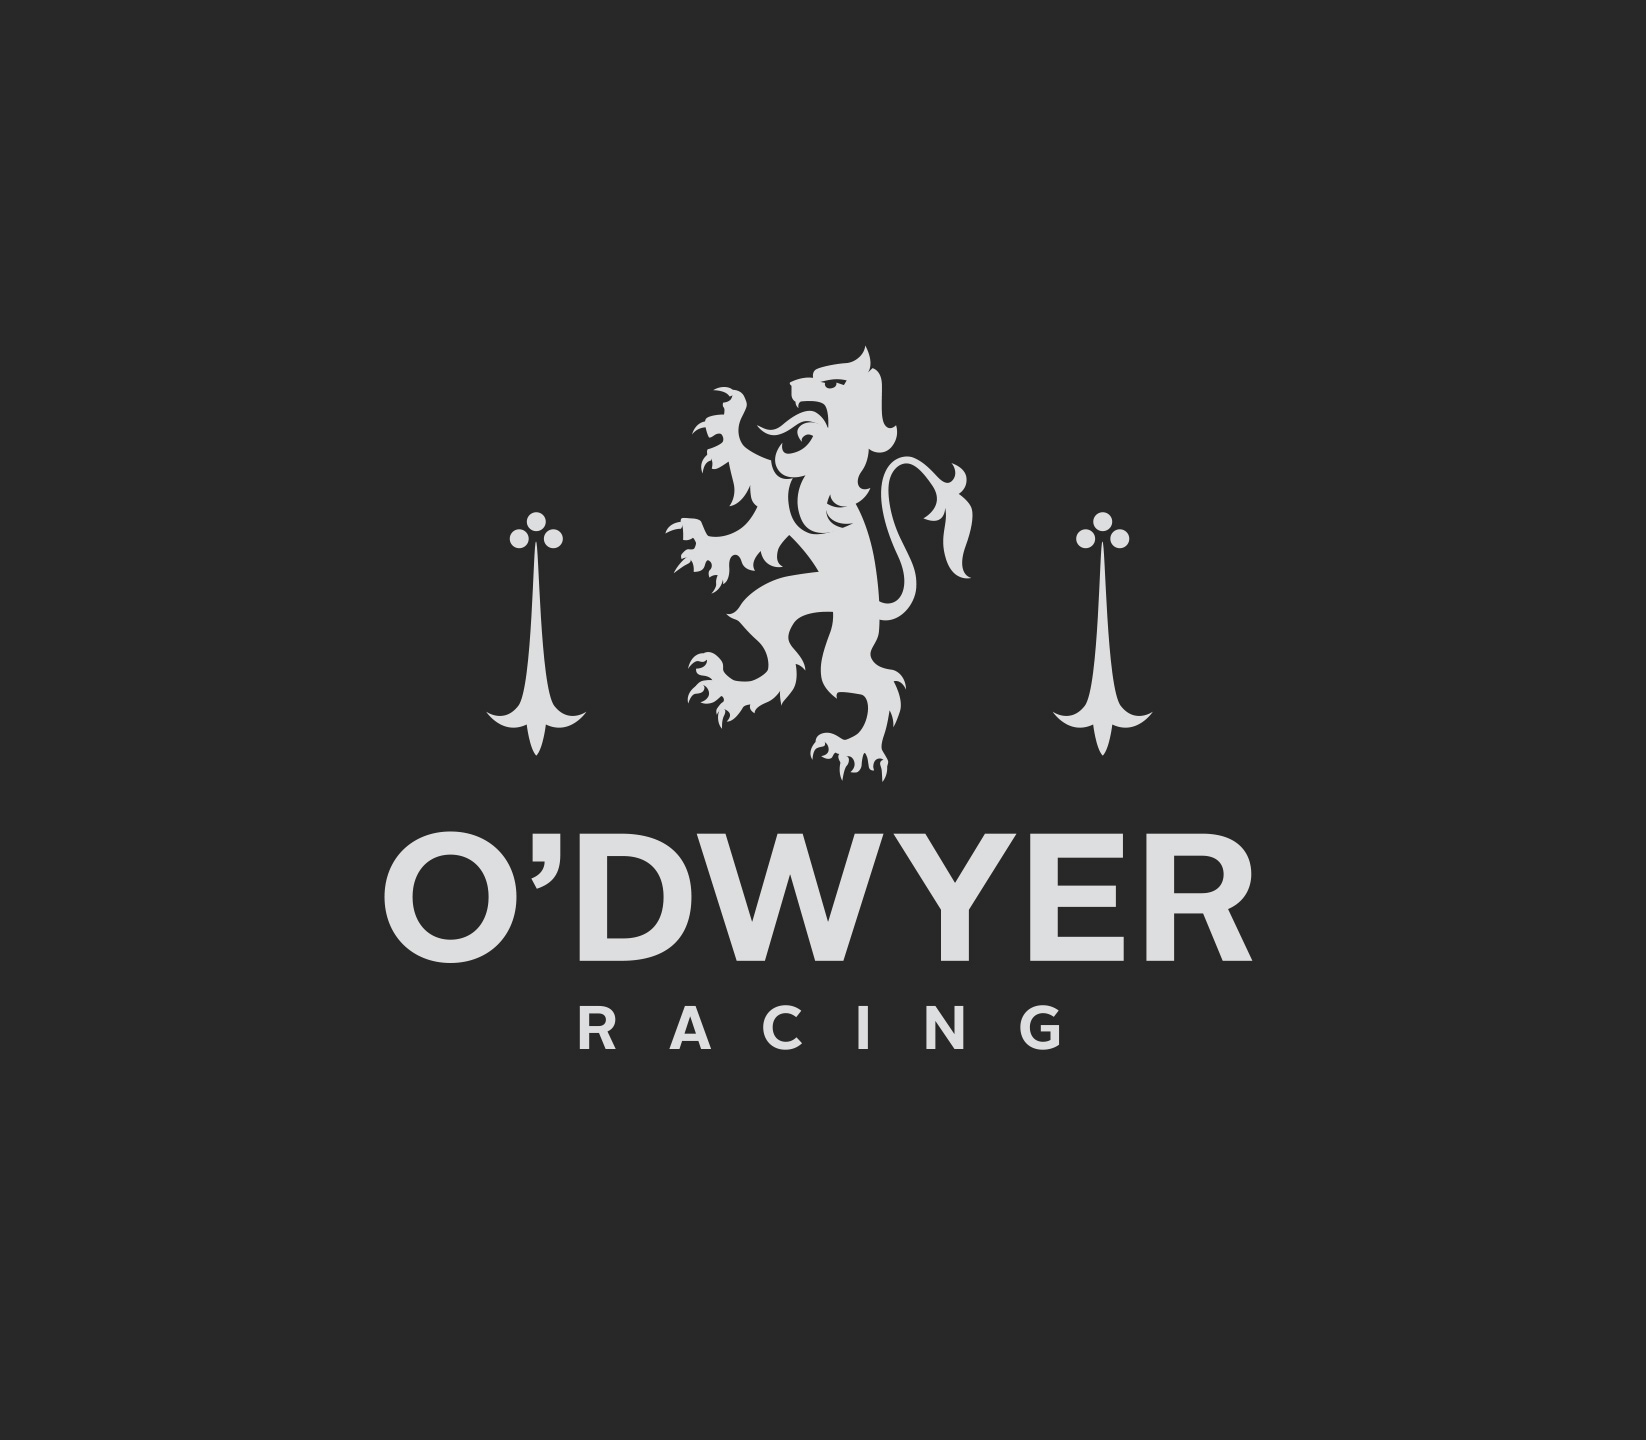 odwyerracing.jpg